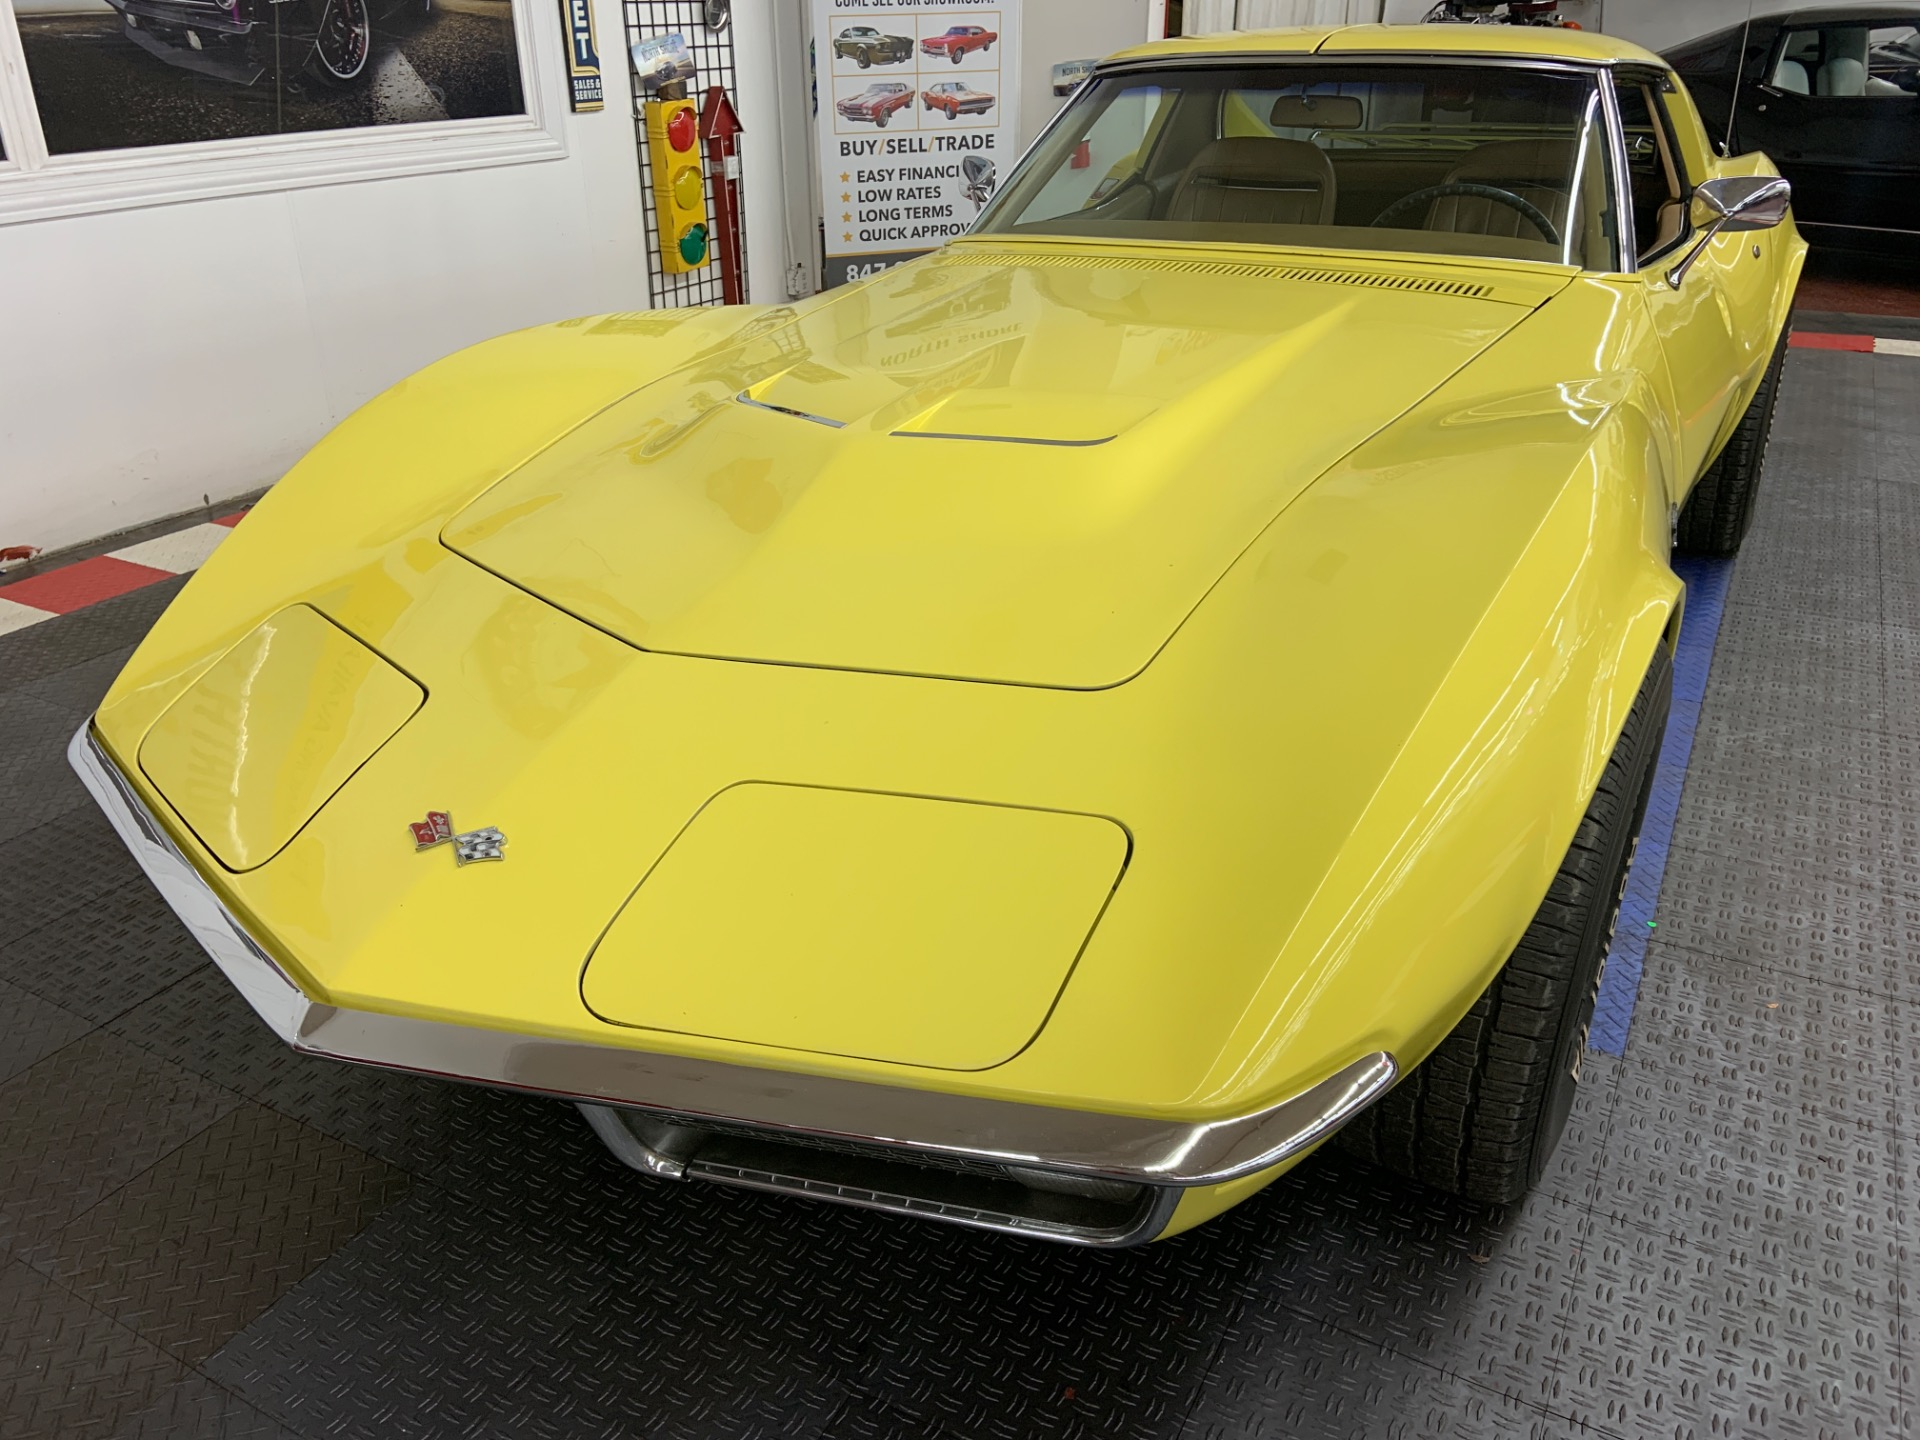 Used 1970 Chevrolet Corvette -STINGRAY - COUPE - LOTS OF FACTORY OPTIONS - COLD A/C - SEE VIDEO - | Mundelein, IL